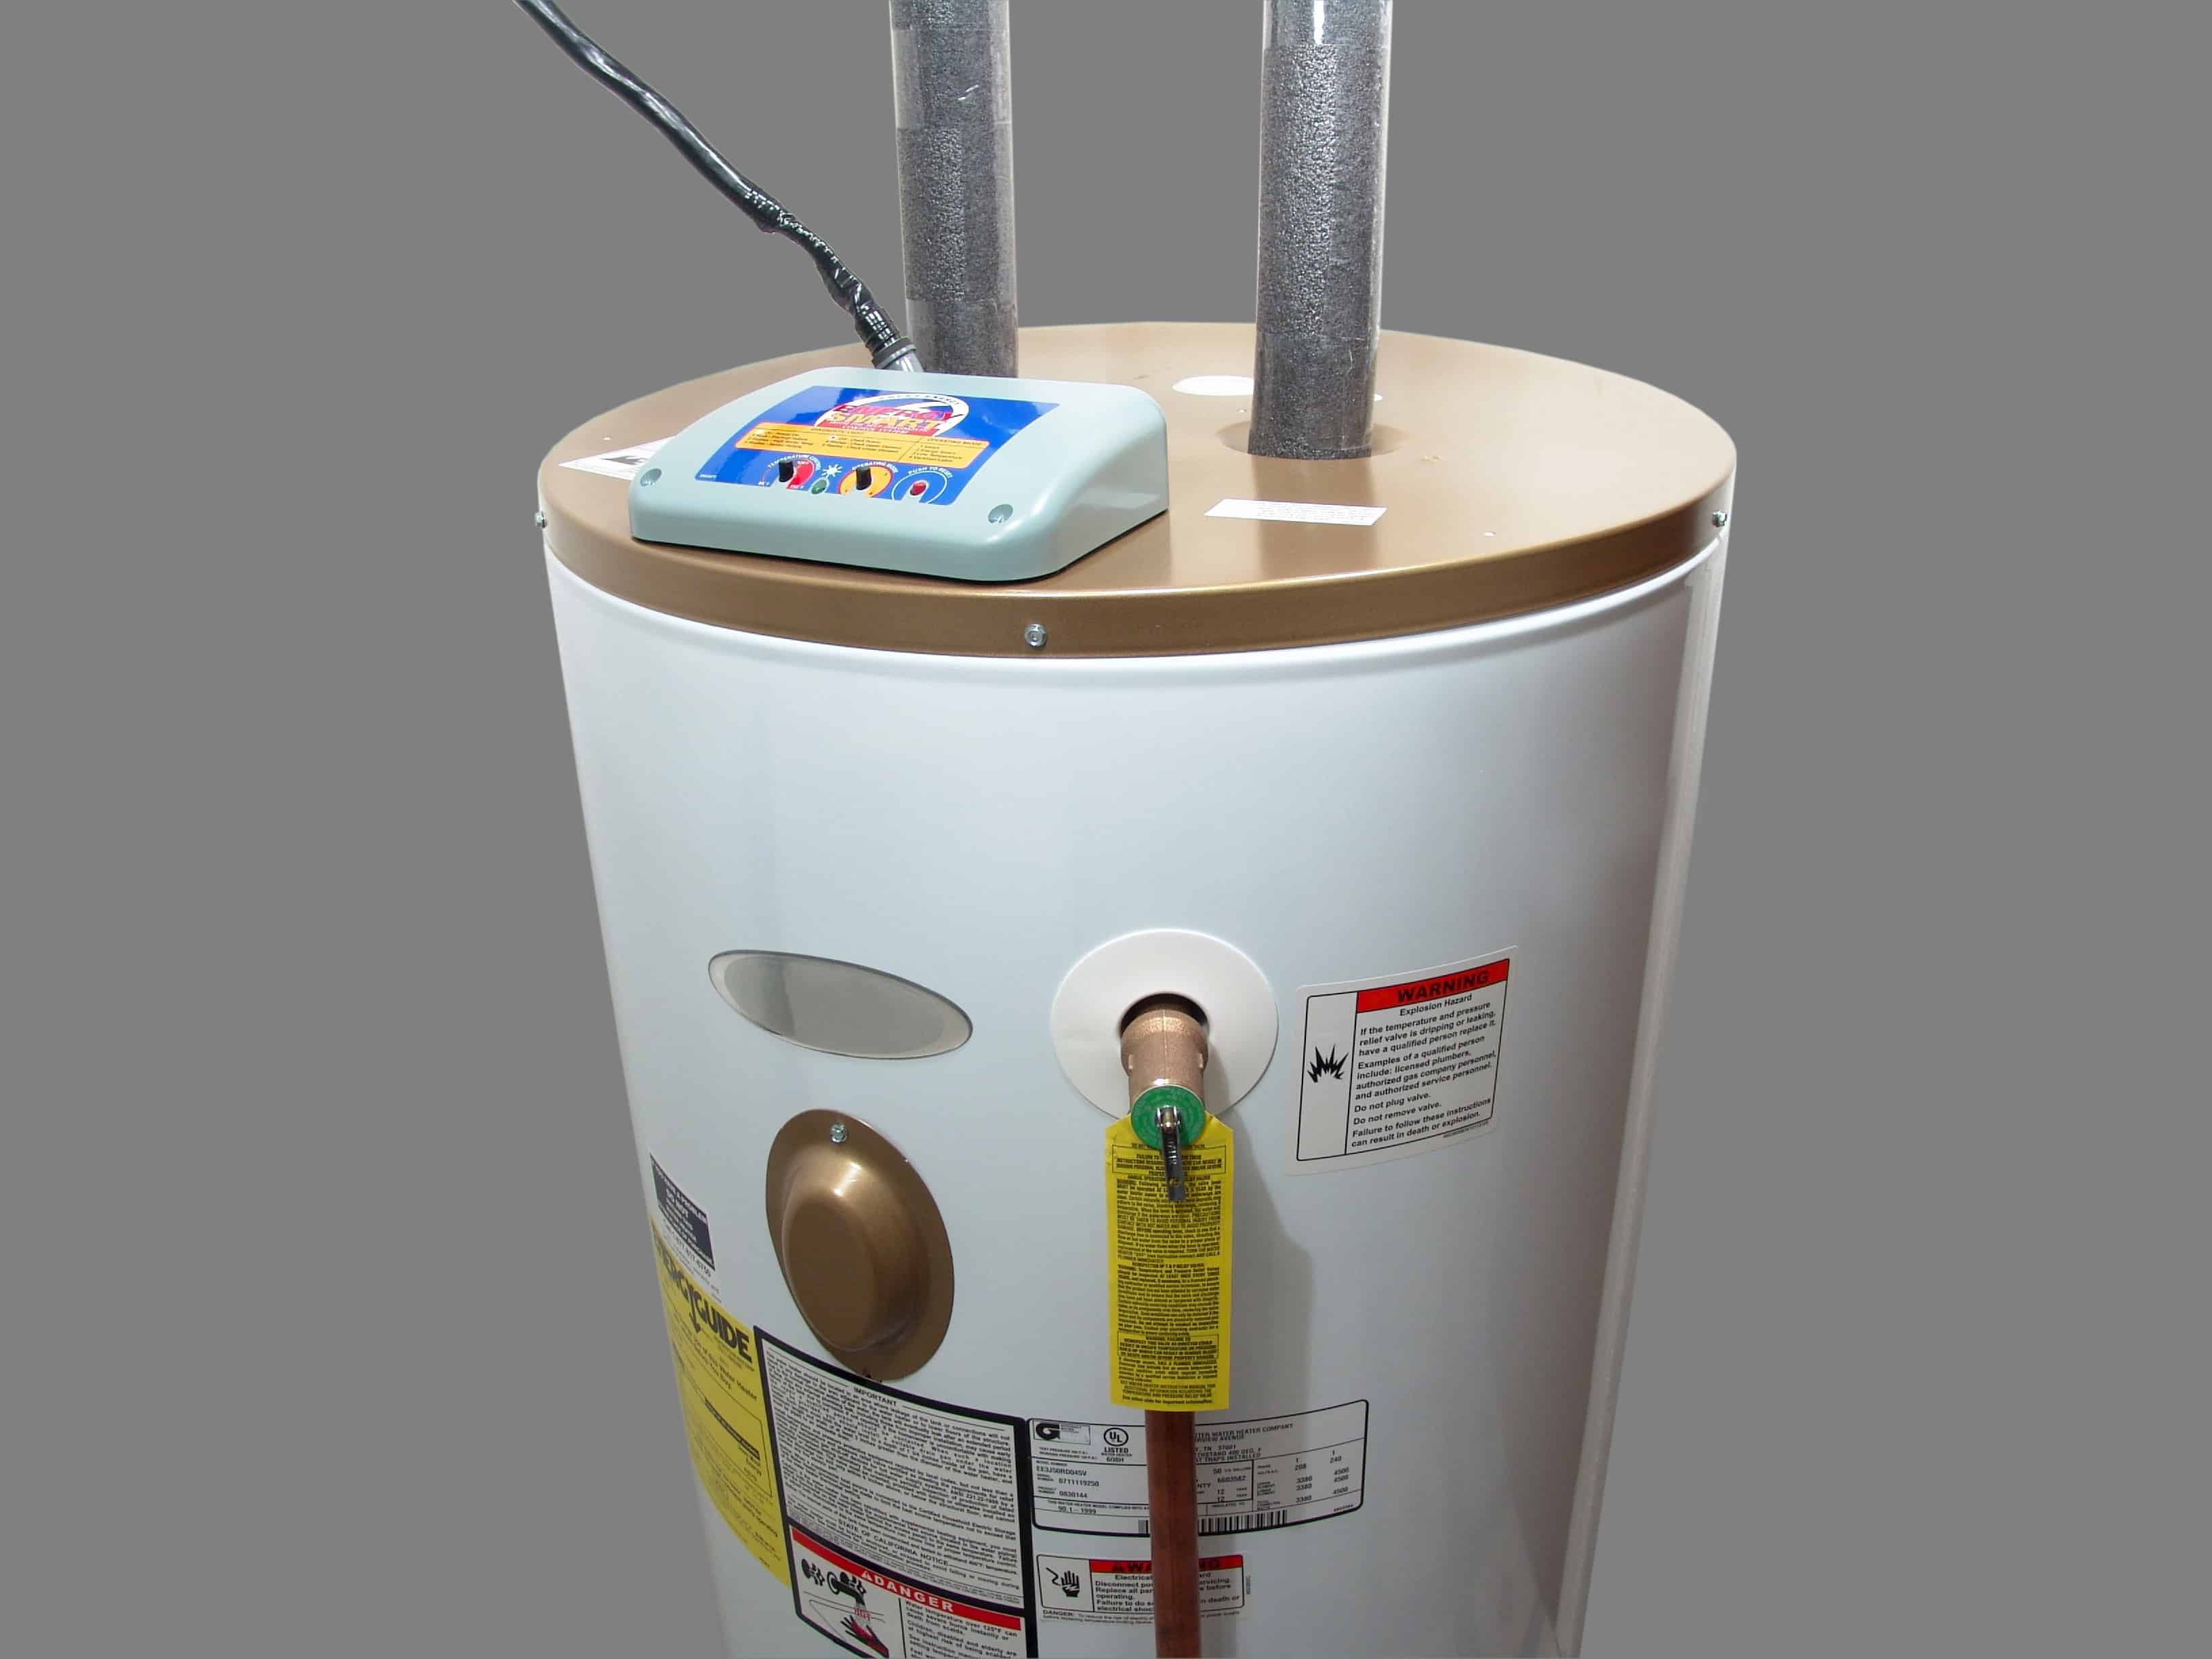 electric water heater - Electric Water Heater Installation